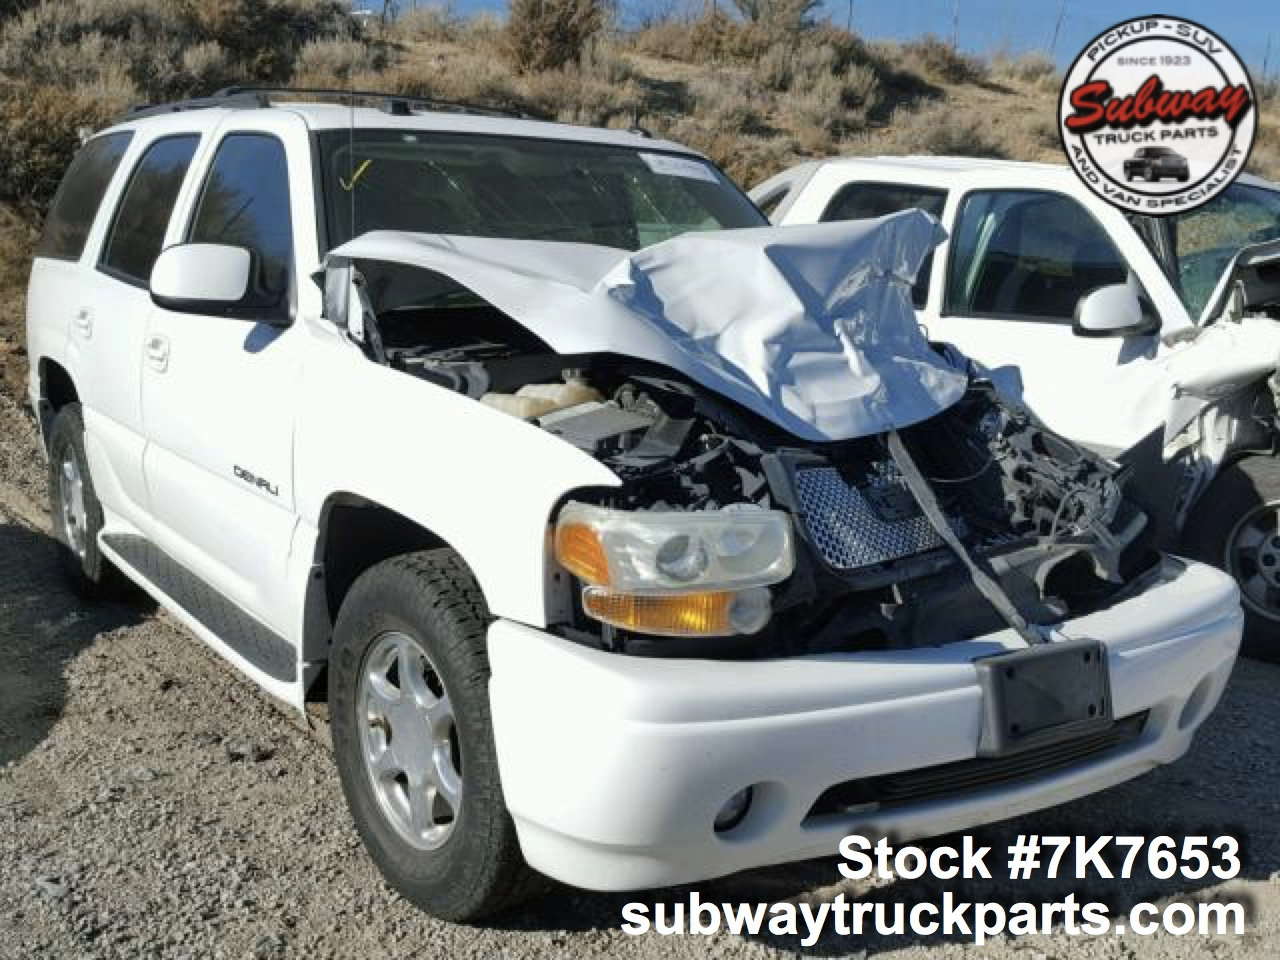 2004 Gmc Yukon Denali Parts Diagram Electrical Wiring House Engine Used 6 0l Awd Subway Truck Rh Subwaytruckparts Com 1999 Motor Diagrams Door